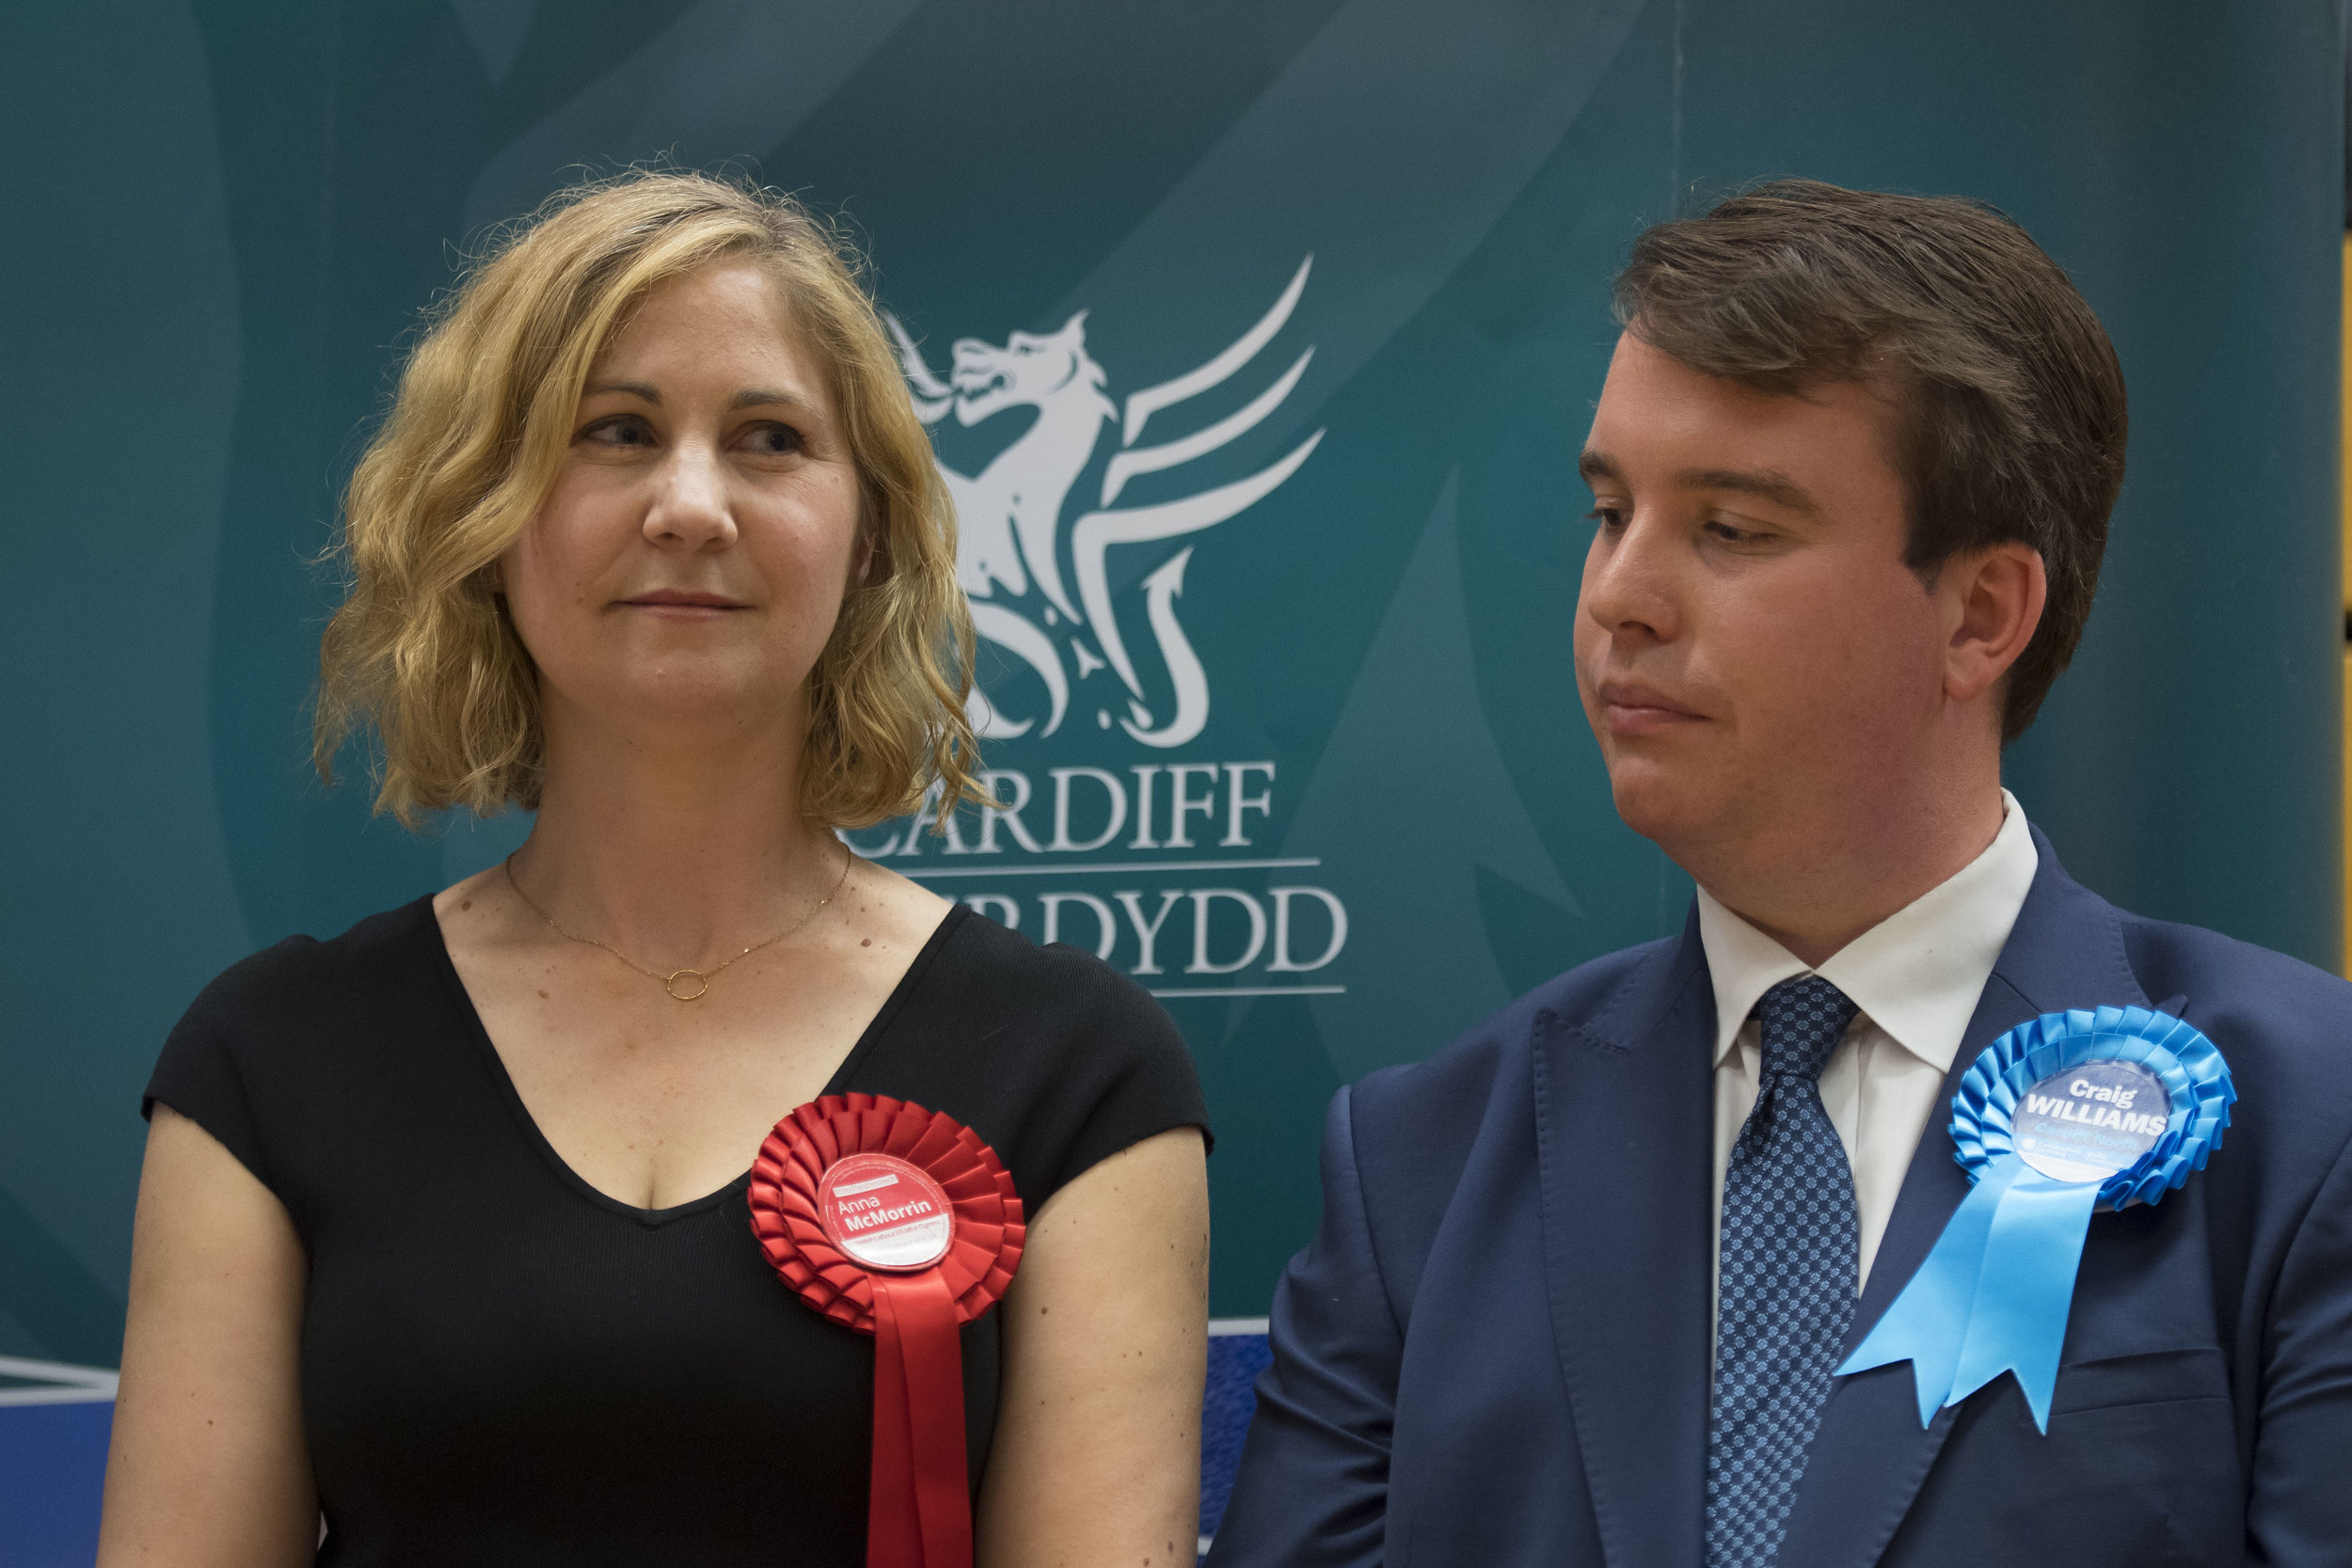 CARDIFF, UNITED KINGDOM - JUNE 09: Anna McMorrin (L) stands on stage with former Cardiff North MP Craig Williams (R) after winning Cardiff North for Labour at the Sport Wales National Centre on June 9, 2017 in Cardiff, United Kingdom. After a snap election was called, the United Kingdom went to the polls yesterday following a closely fought election. The results from across the country are being counted and an overall result is expected in the early hours. (Photo by Matthew Horwood/Getty Images)